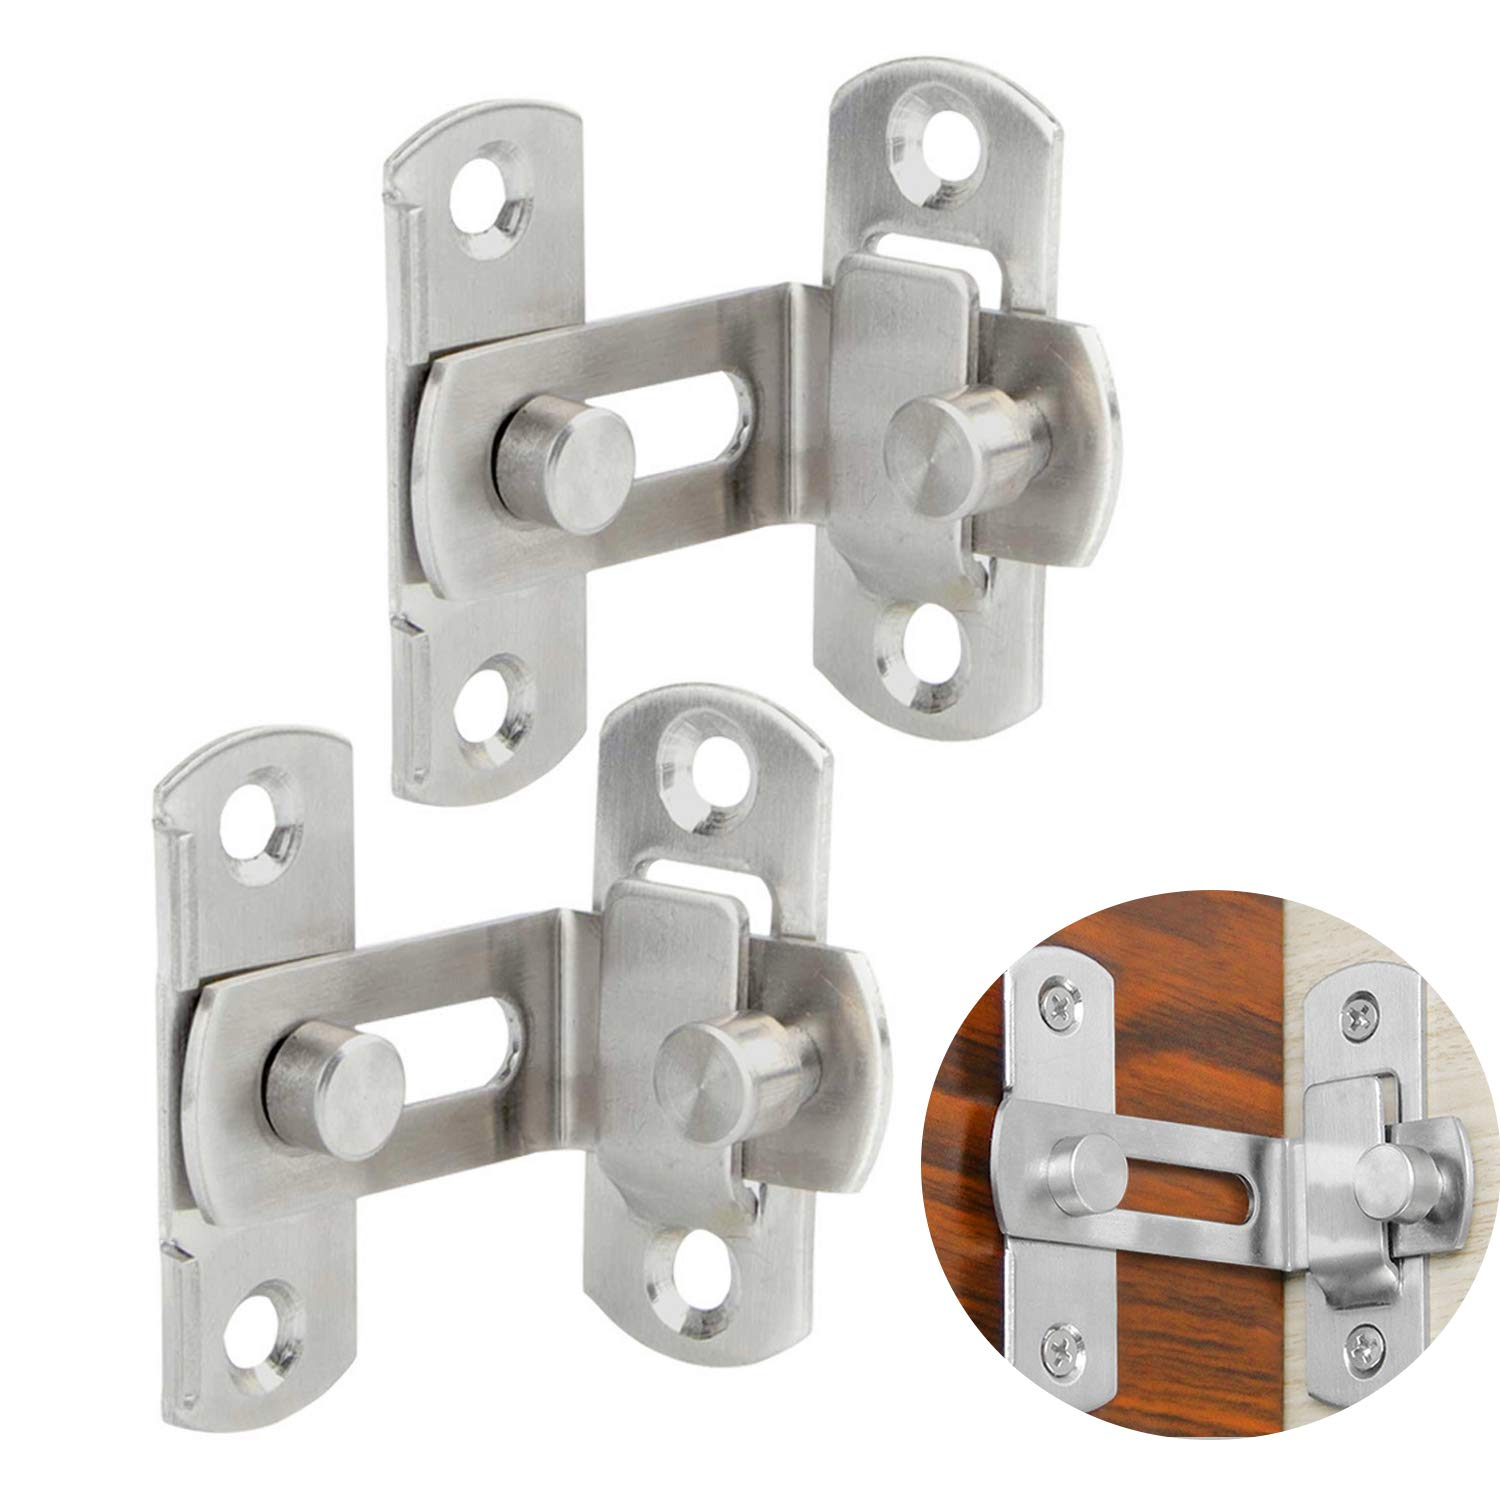 Gizhome 2 Pack 3 Inch 90 Degree Right Angle Door Latch Hasp Bending Latch Buckle Bolt Barn Sliding Lock Barrel Bolt with Screws for Toilet Doors and Windows